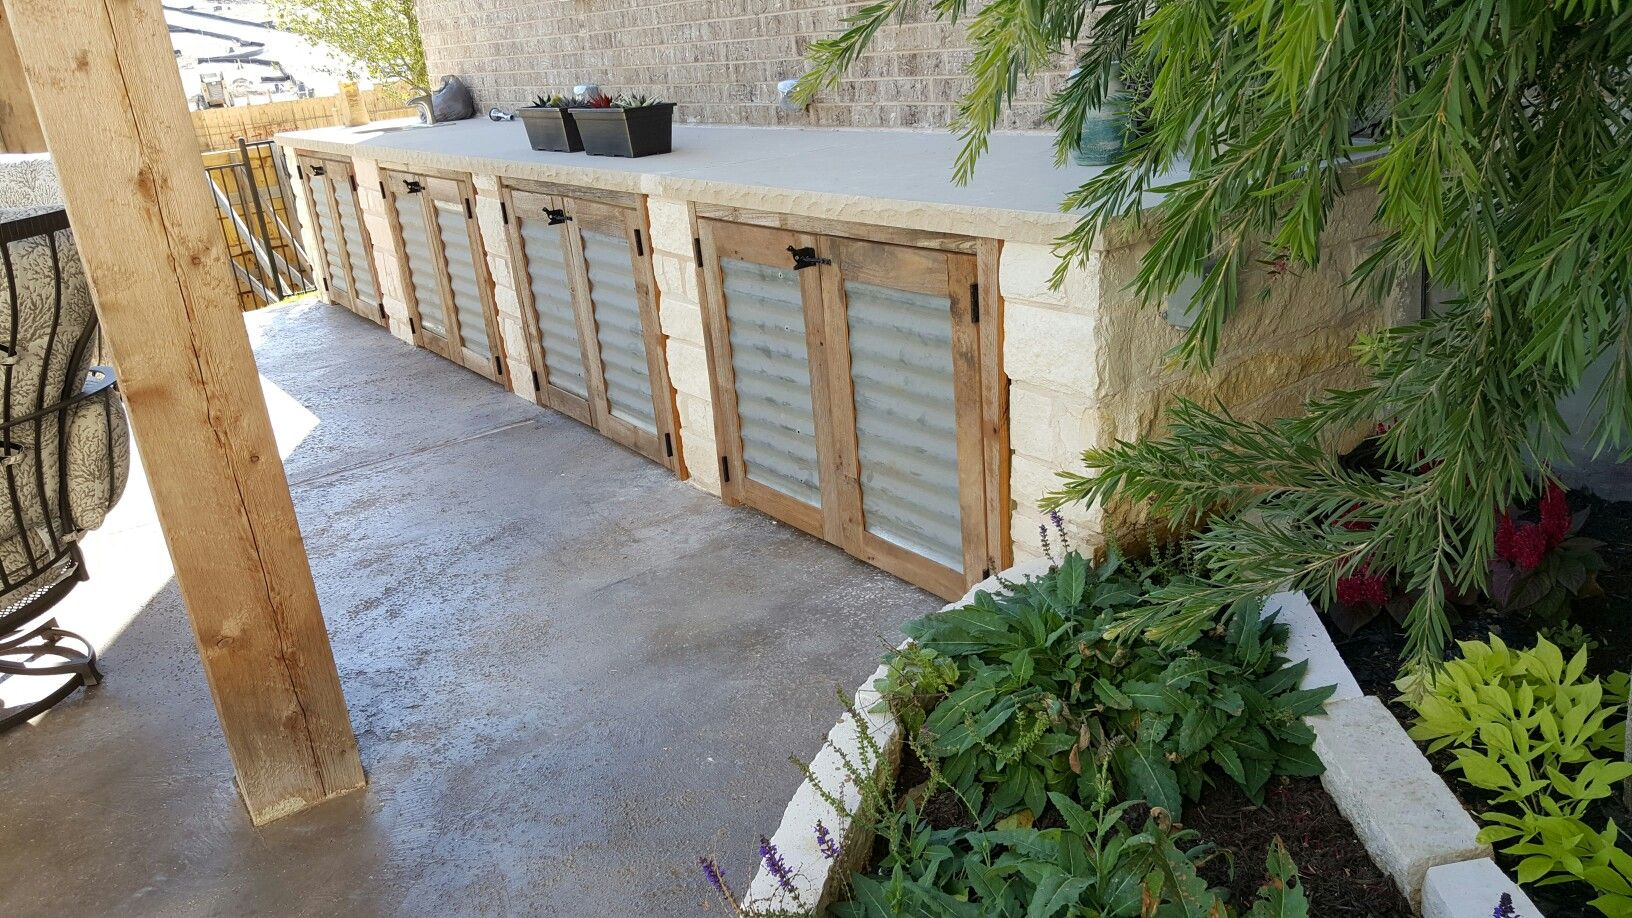 Outdoor Kitchen Rustic Cabinet Doors Using Barn Wood Frames And Reclaimed Corrugated Tin Patio Ideas In 2019 Kitchen Shelf Decor Rustic Doors Kitchen Cabinets To Ceiling